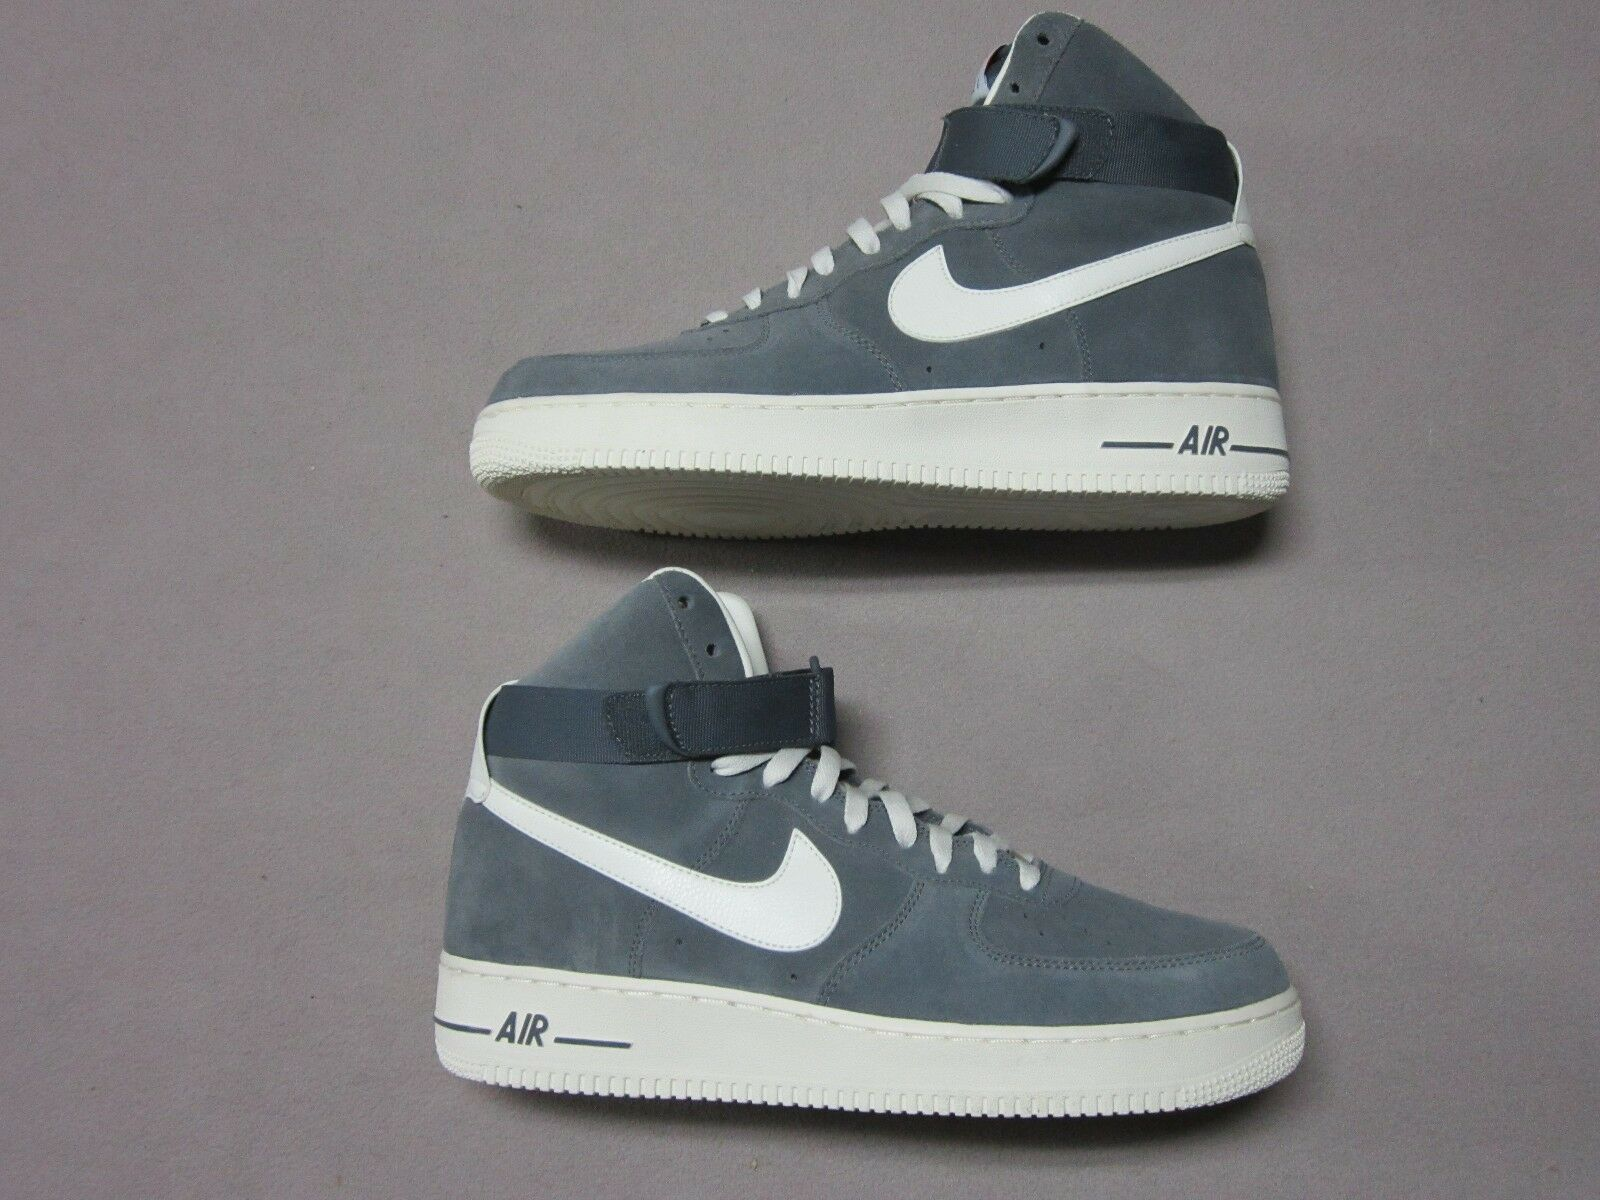 NIKE RARE AIR FORCE 1 '82 WOLF GREY SIZE & WHITE SNEAKERS SHOES SIZE GREY 11 f3082e